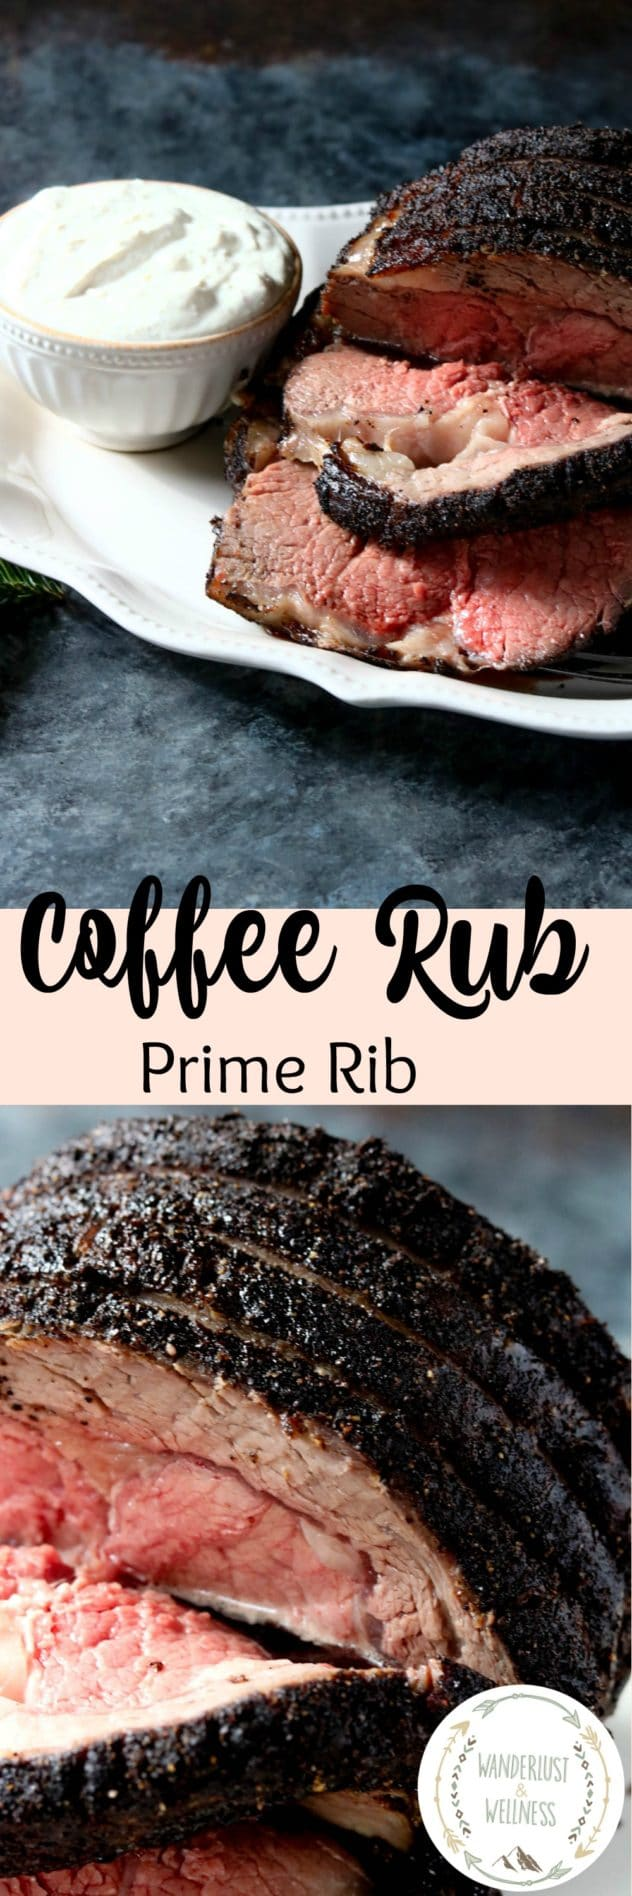 Coffee Rub Prime Rib